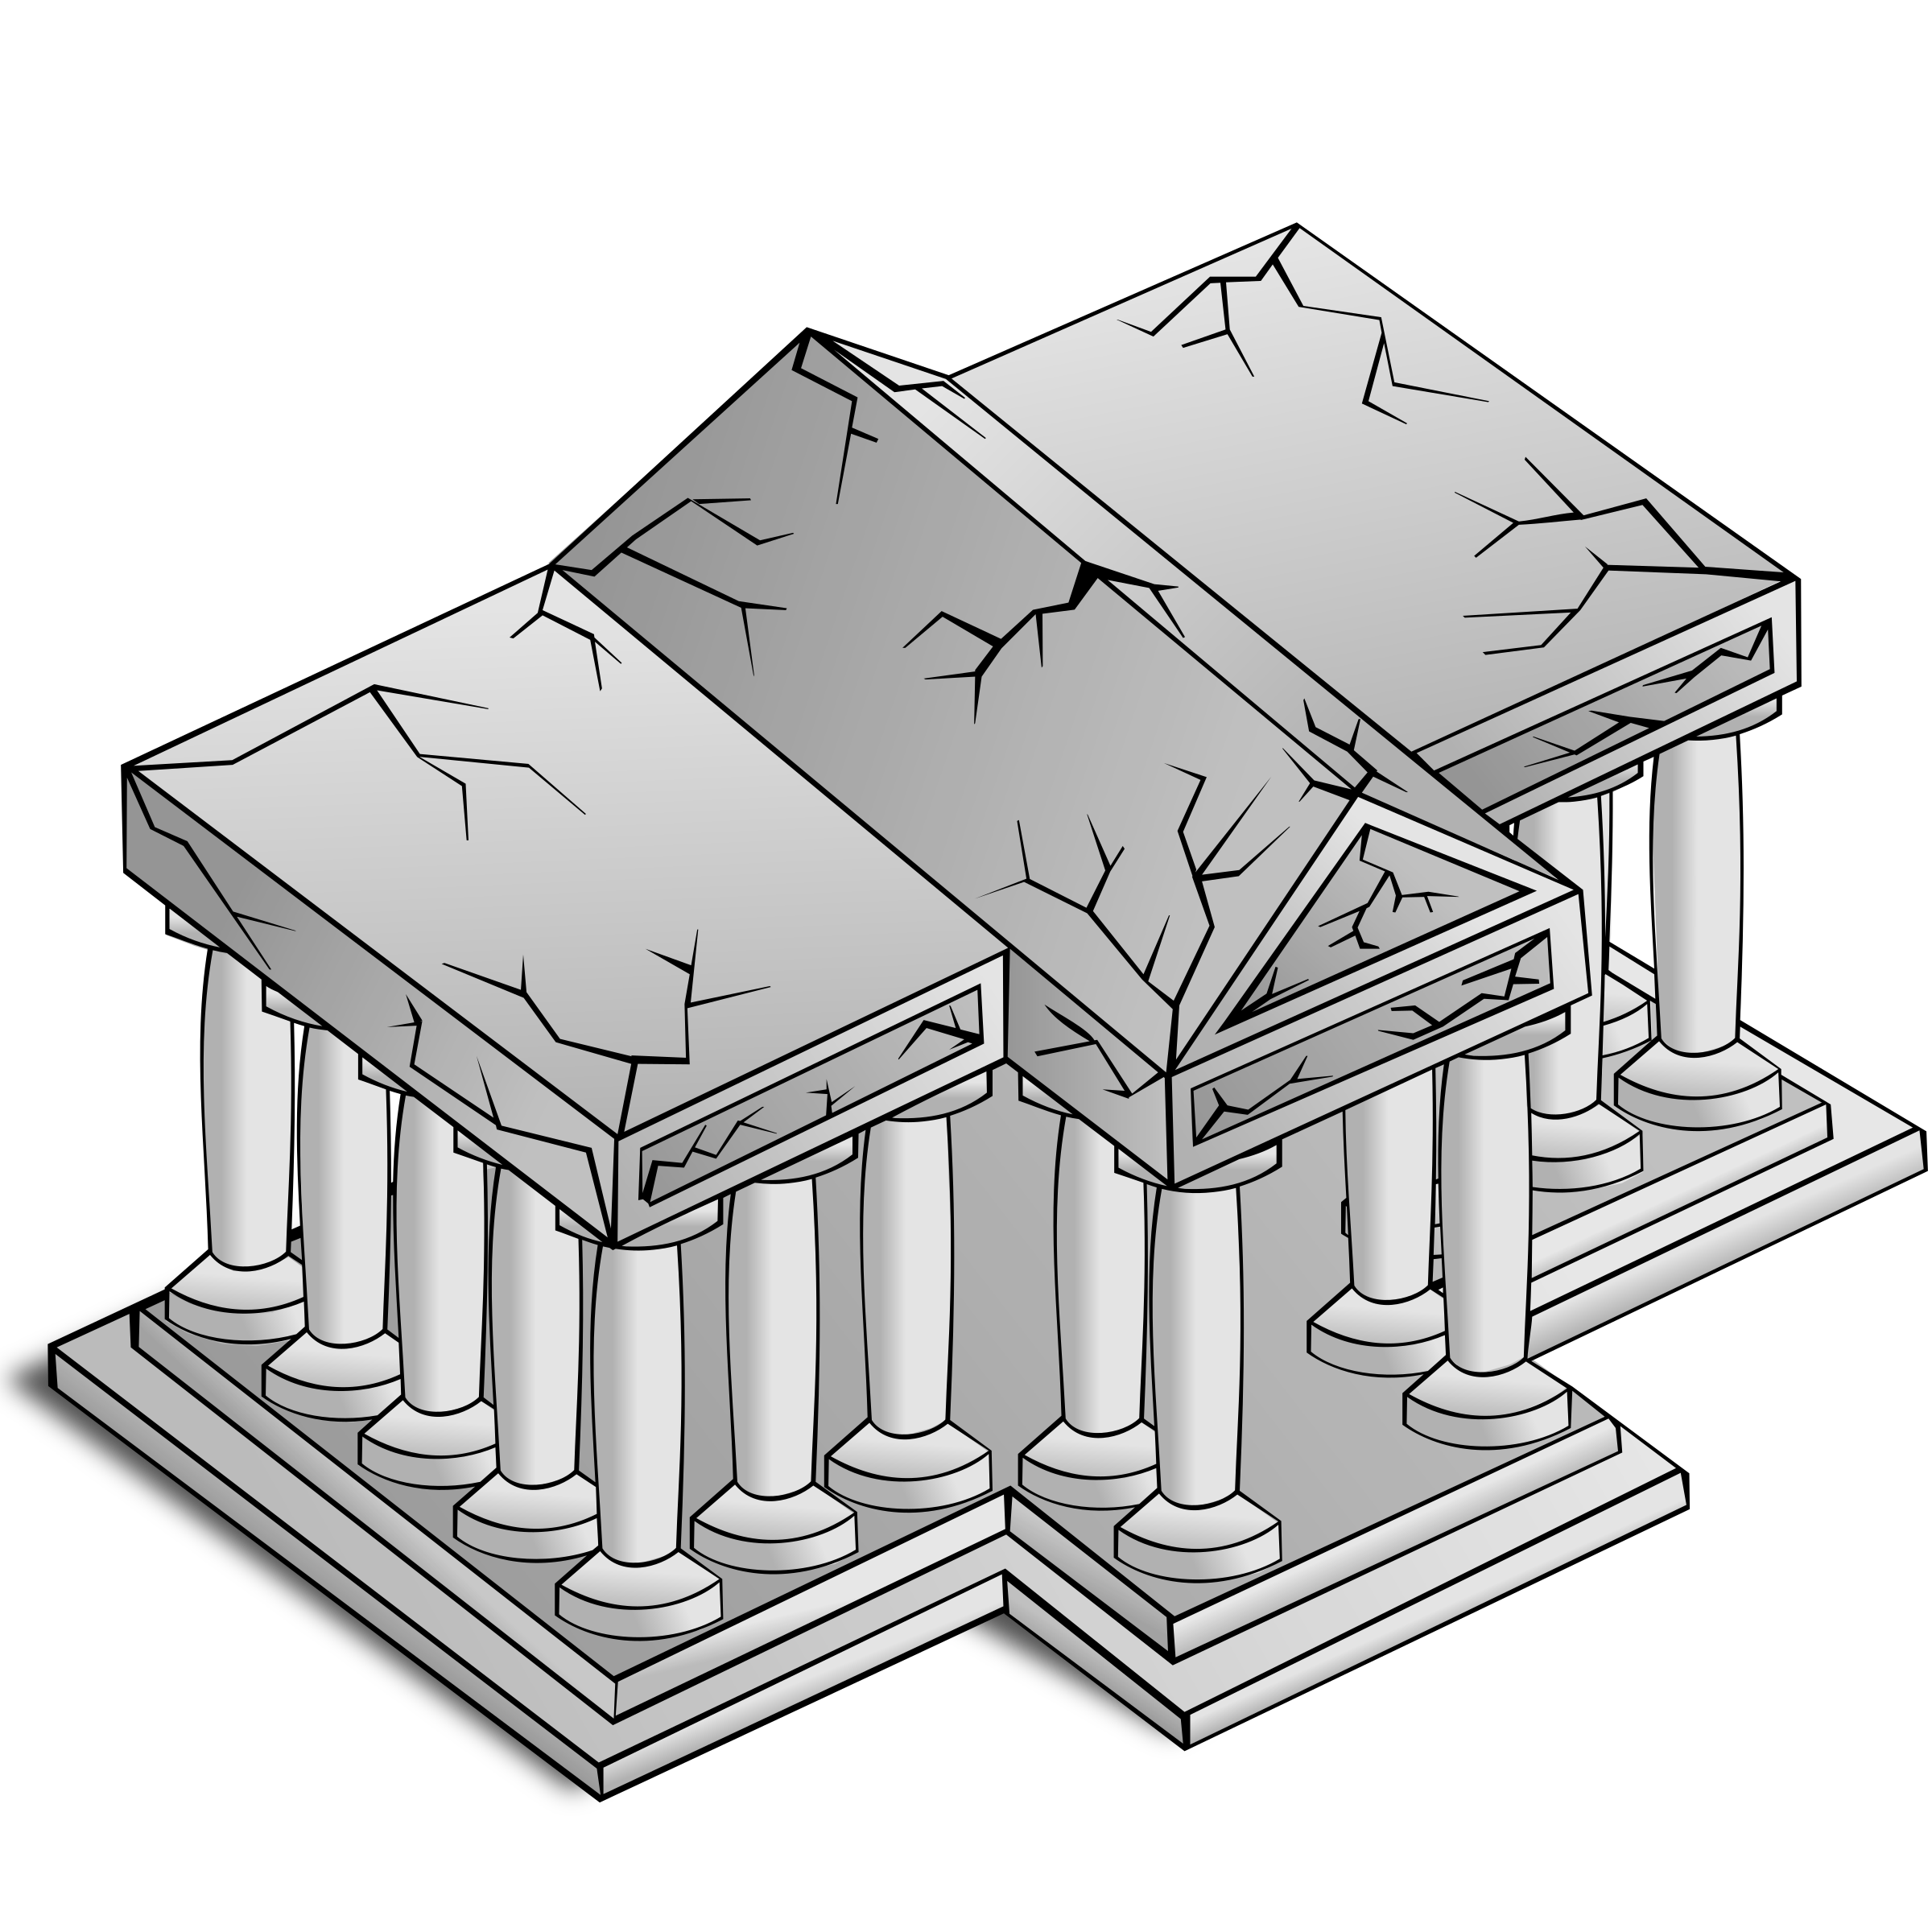 svg free Greek columns at getdrawings. Library clipart drawing.